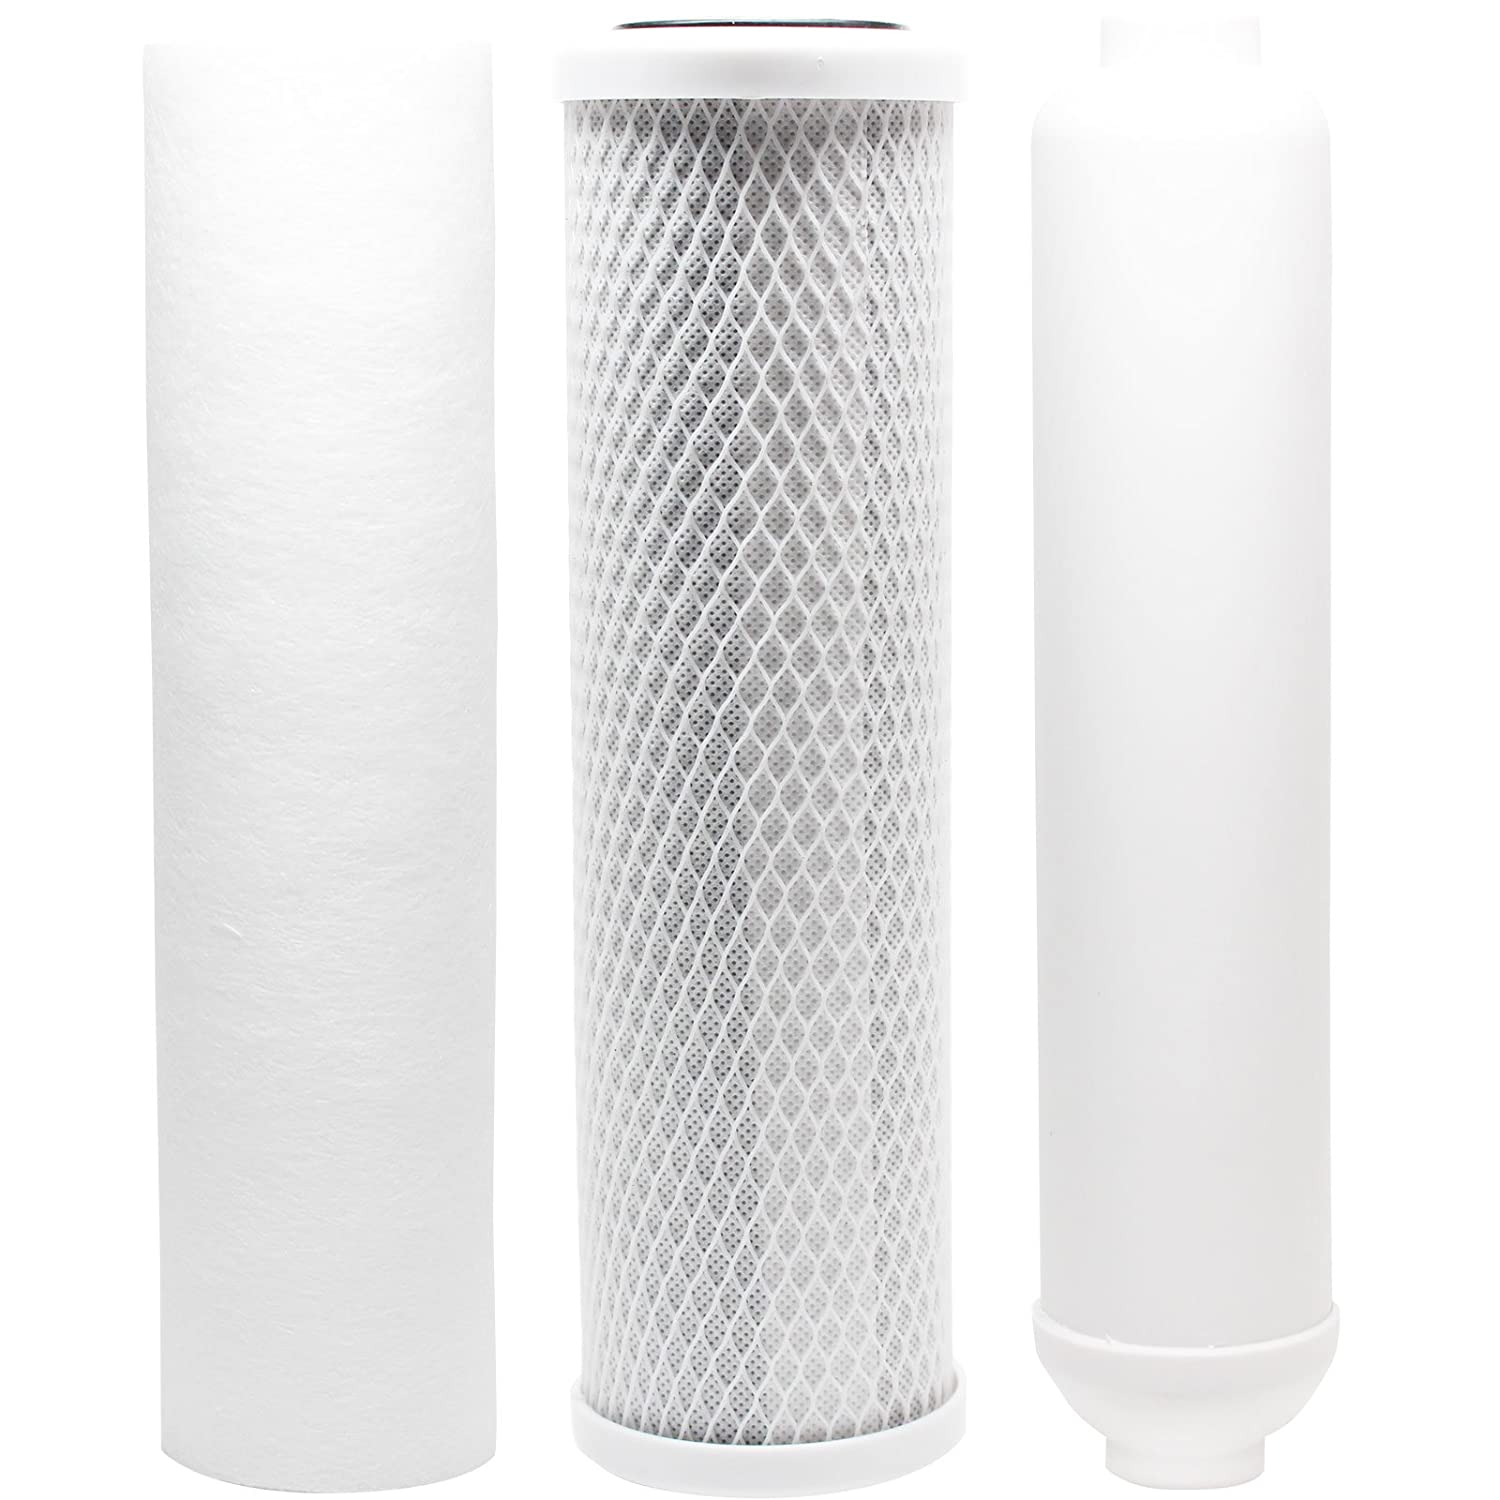 Includes Carbon Block Filter Replacement Filter Kit Compatible with Rainsoft 9591 RO System PP Sediment Filter /& Inline Filter Cartridge Denali Pure Brand